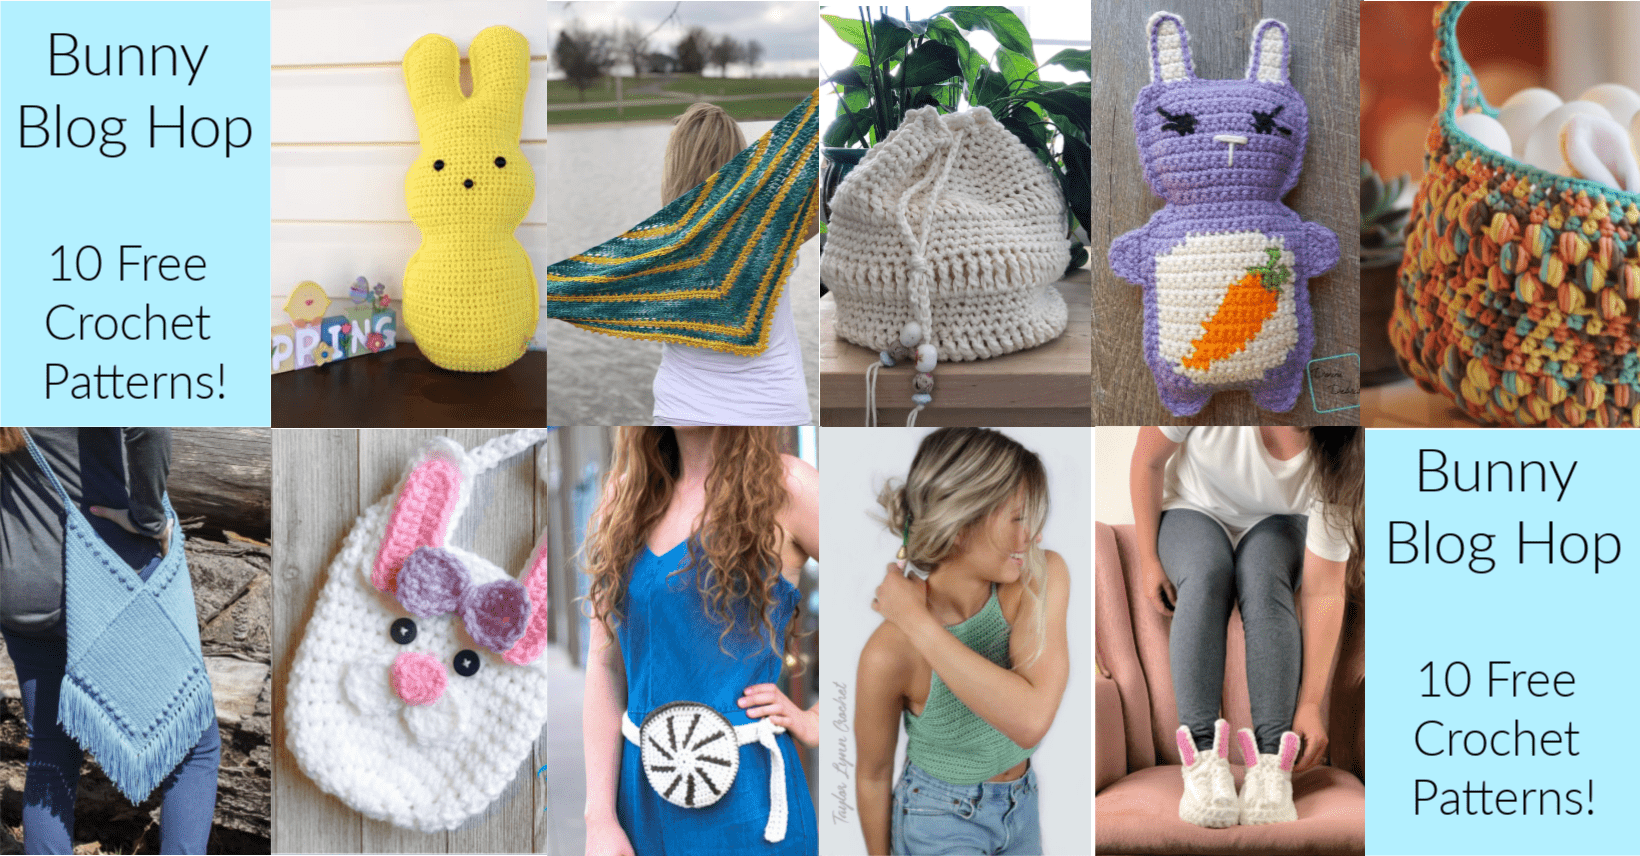 10 Quick crochet projects to make now!